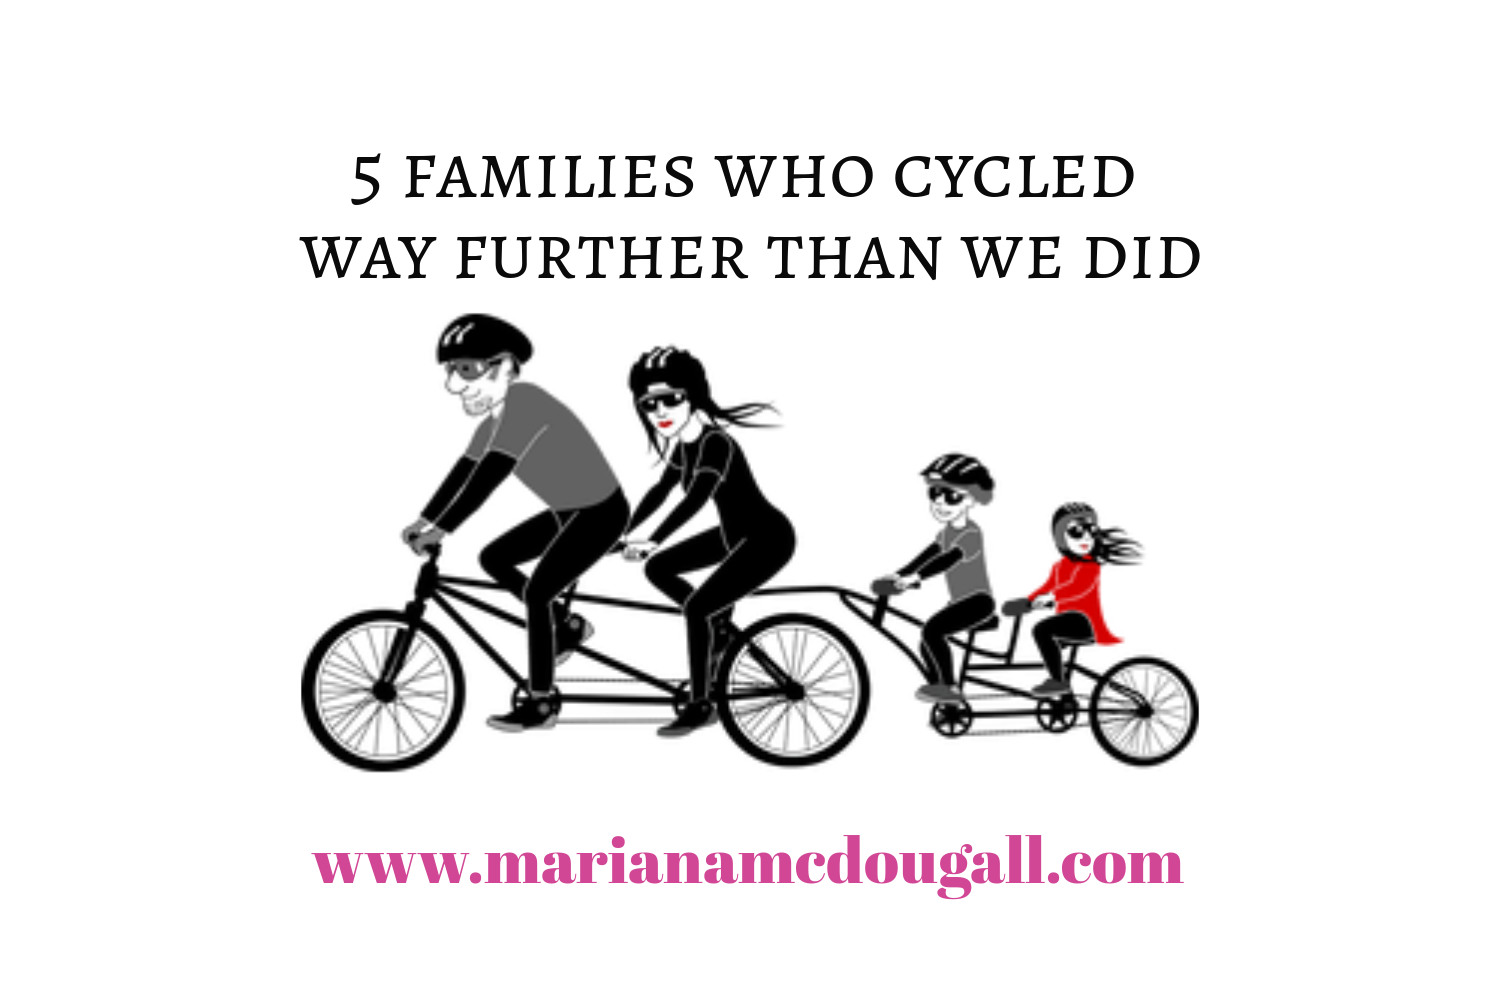 5 families who cycled way further than we did